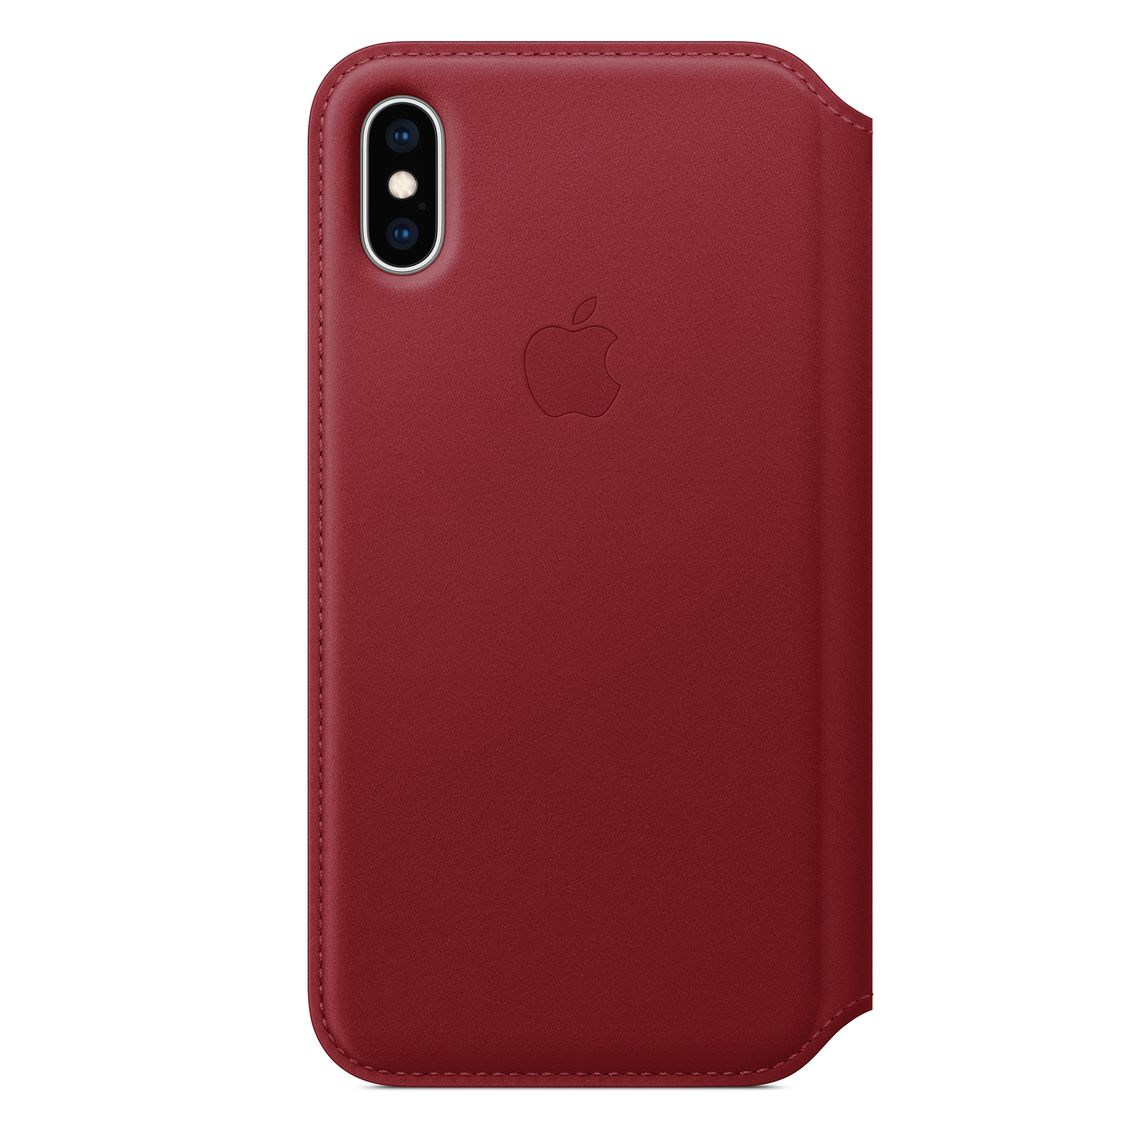 new concept e3874 a61ca iPhone XS Leather Folio - (PRODUCT)RED